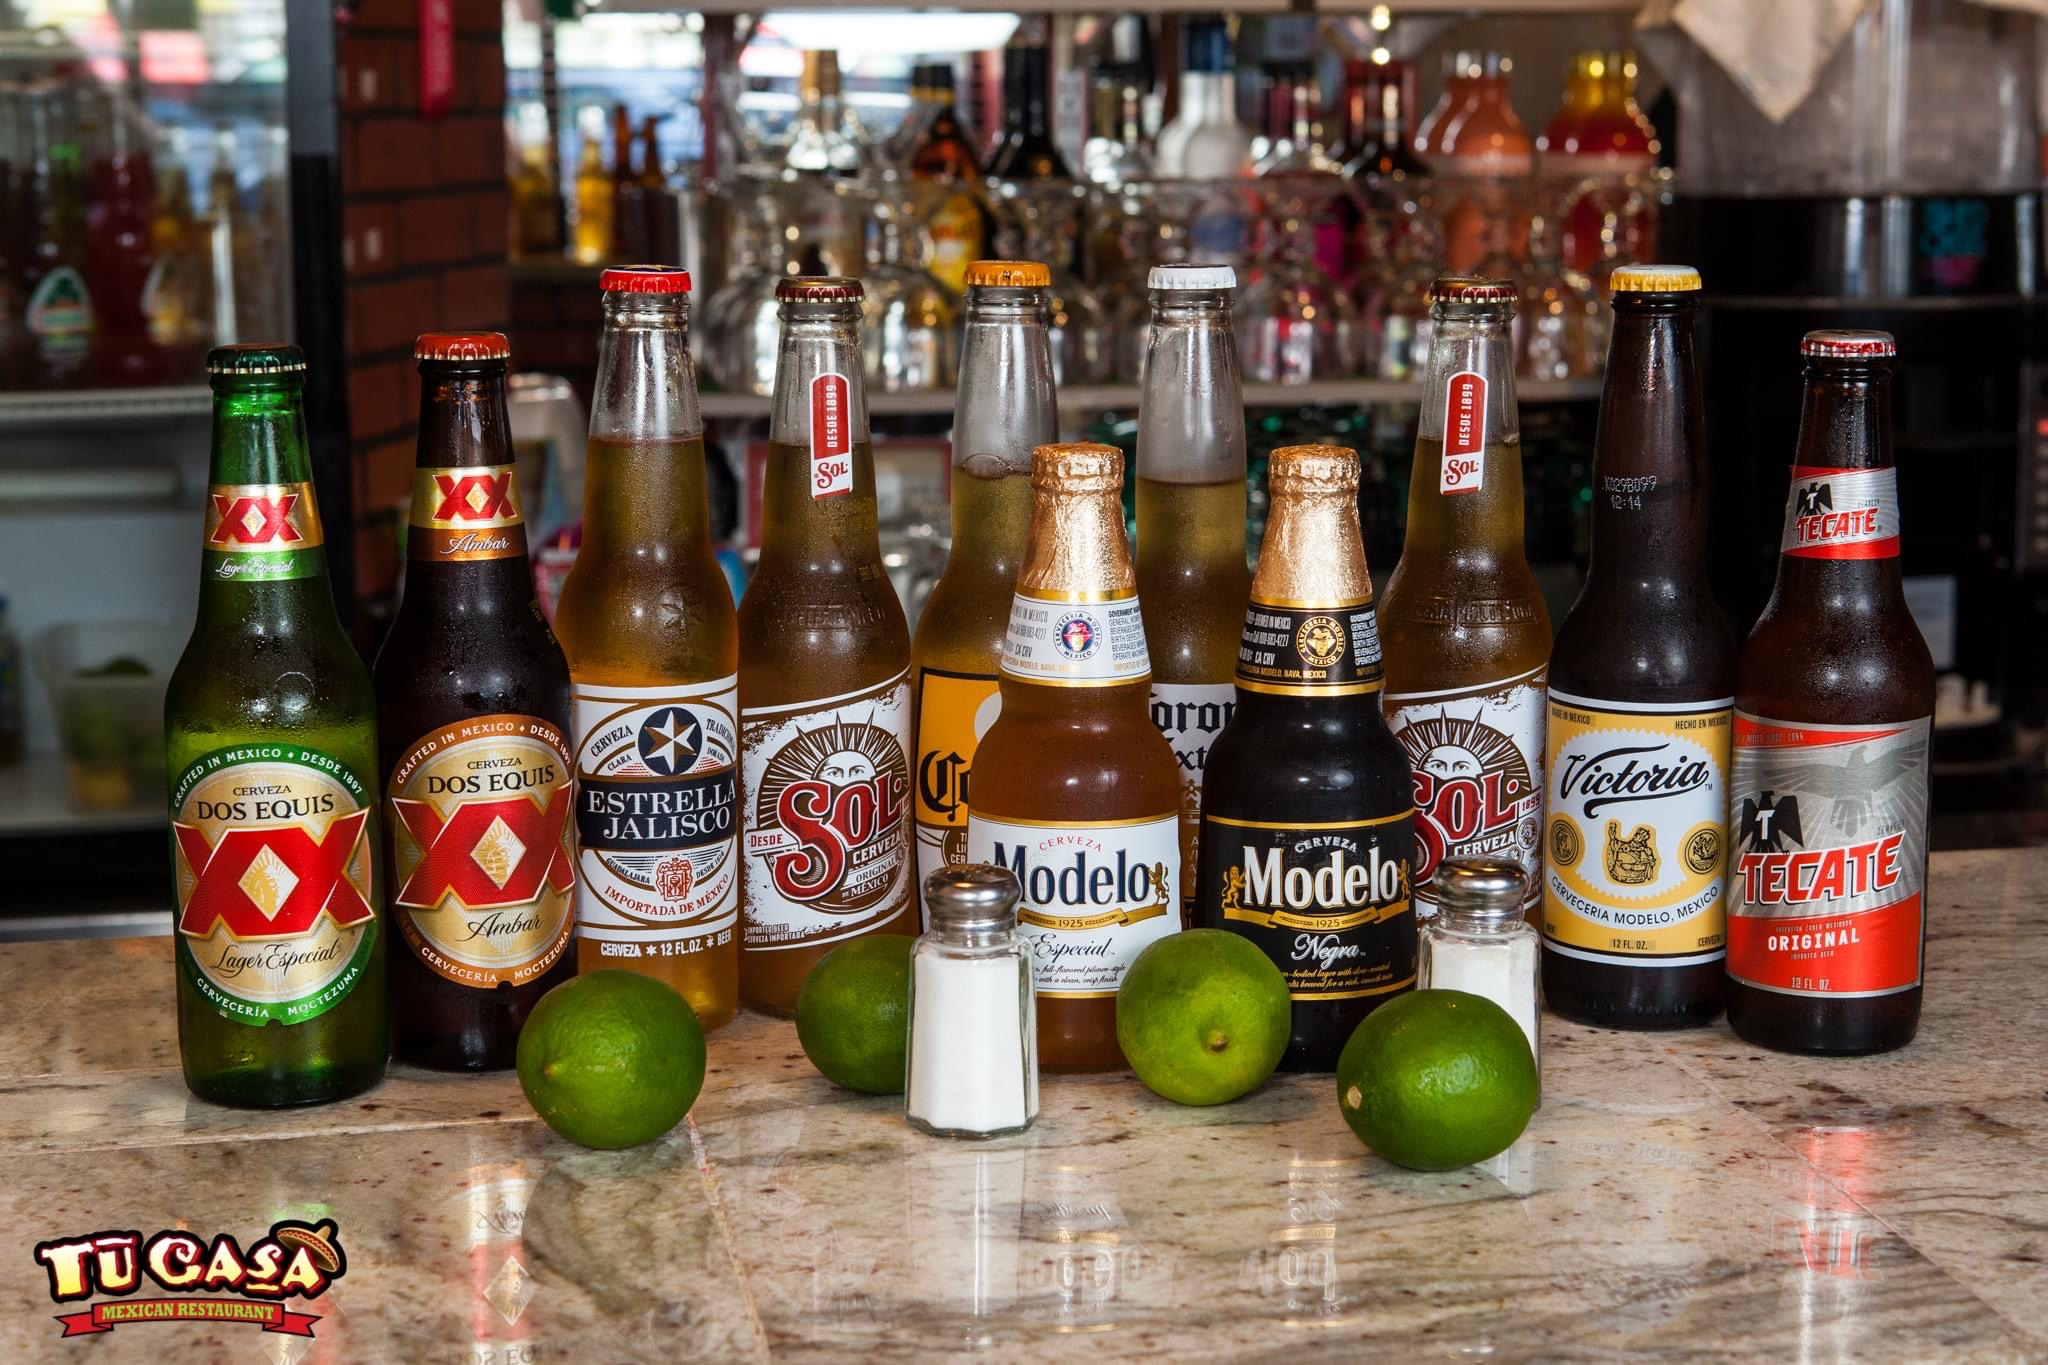 Tu Casa Mexican Restaurant We have a large variety of beer!